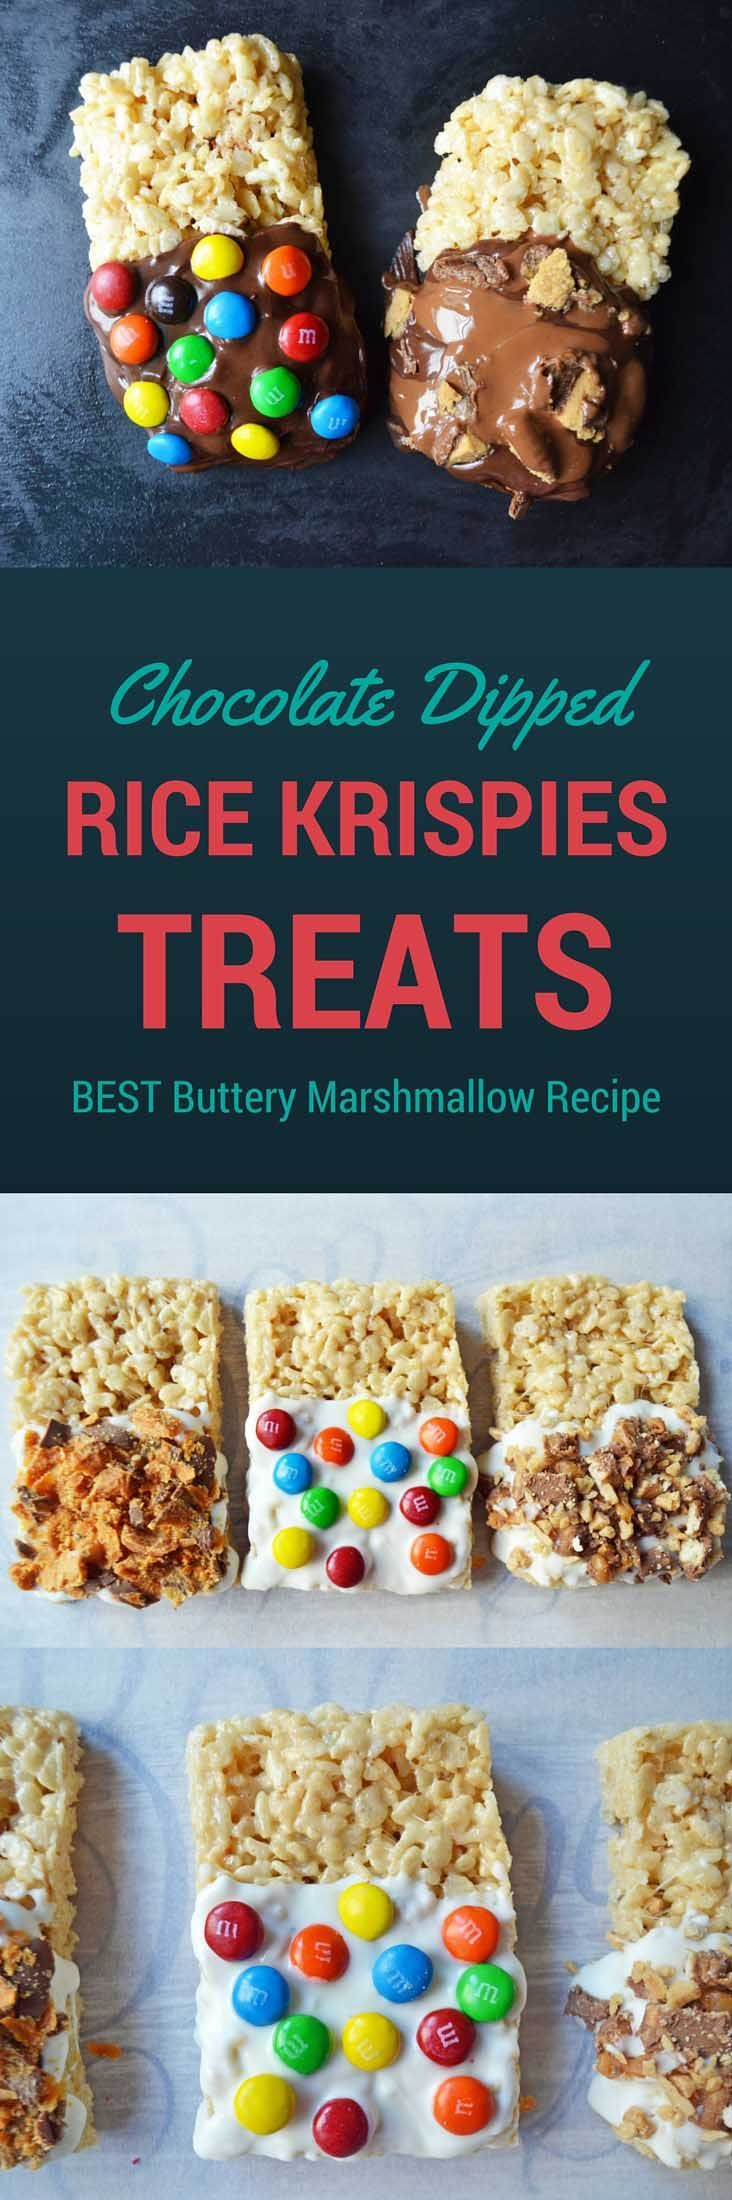 Secrets on how to make the BEST Rice Krispies Treats. Forget the recipe on the box. There's a better way! Dipping them in milk, white, or semi-sweet chocolate and the rolling into your favorite candy bar toppings. They taste just like the chocolate dipped Rice Krispies treats you find at Disneyland.